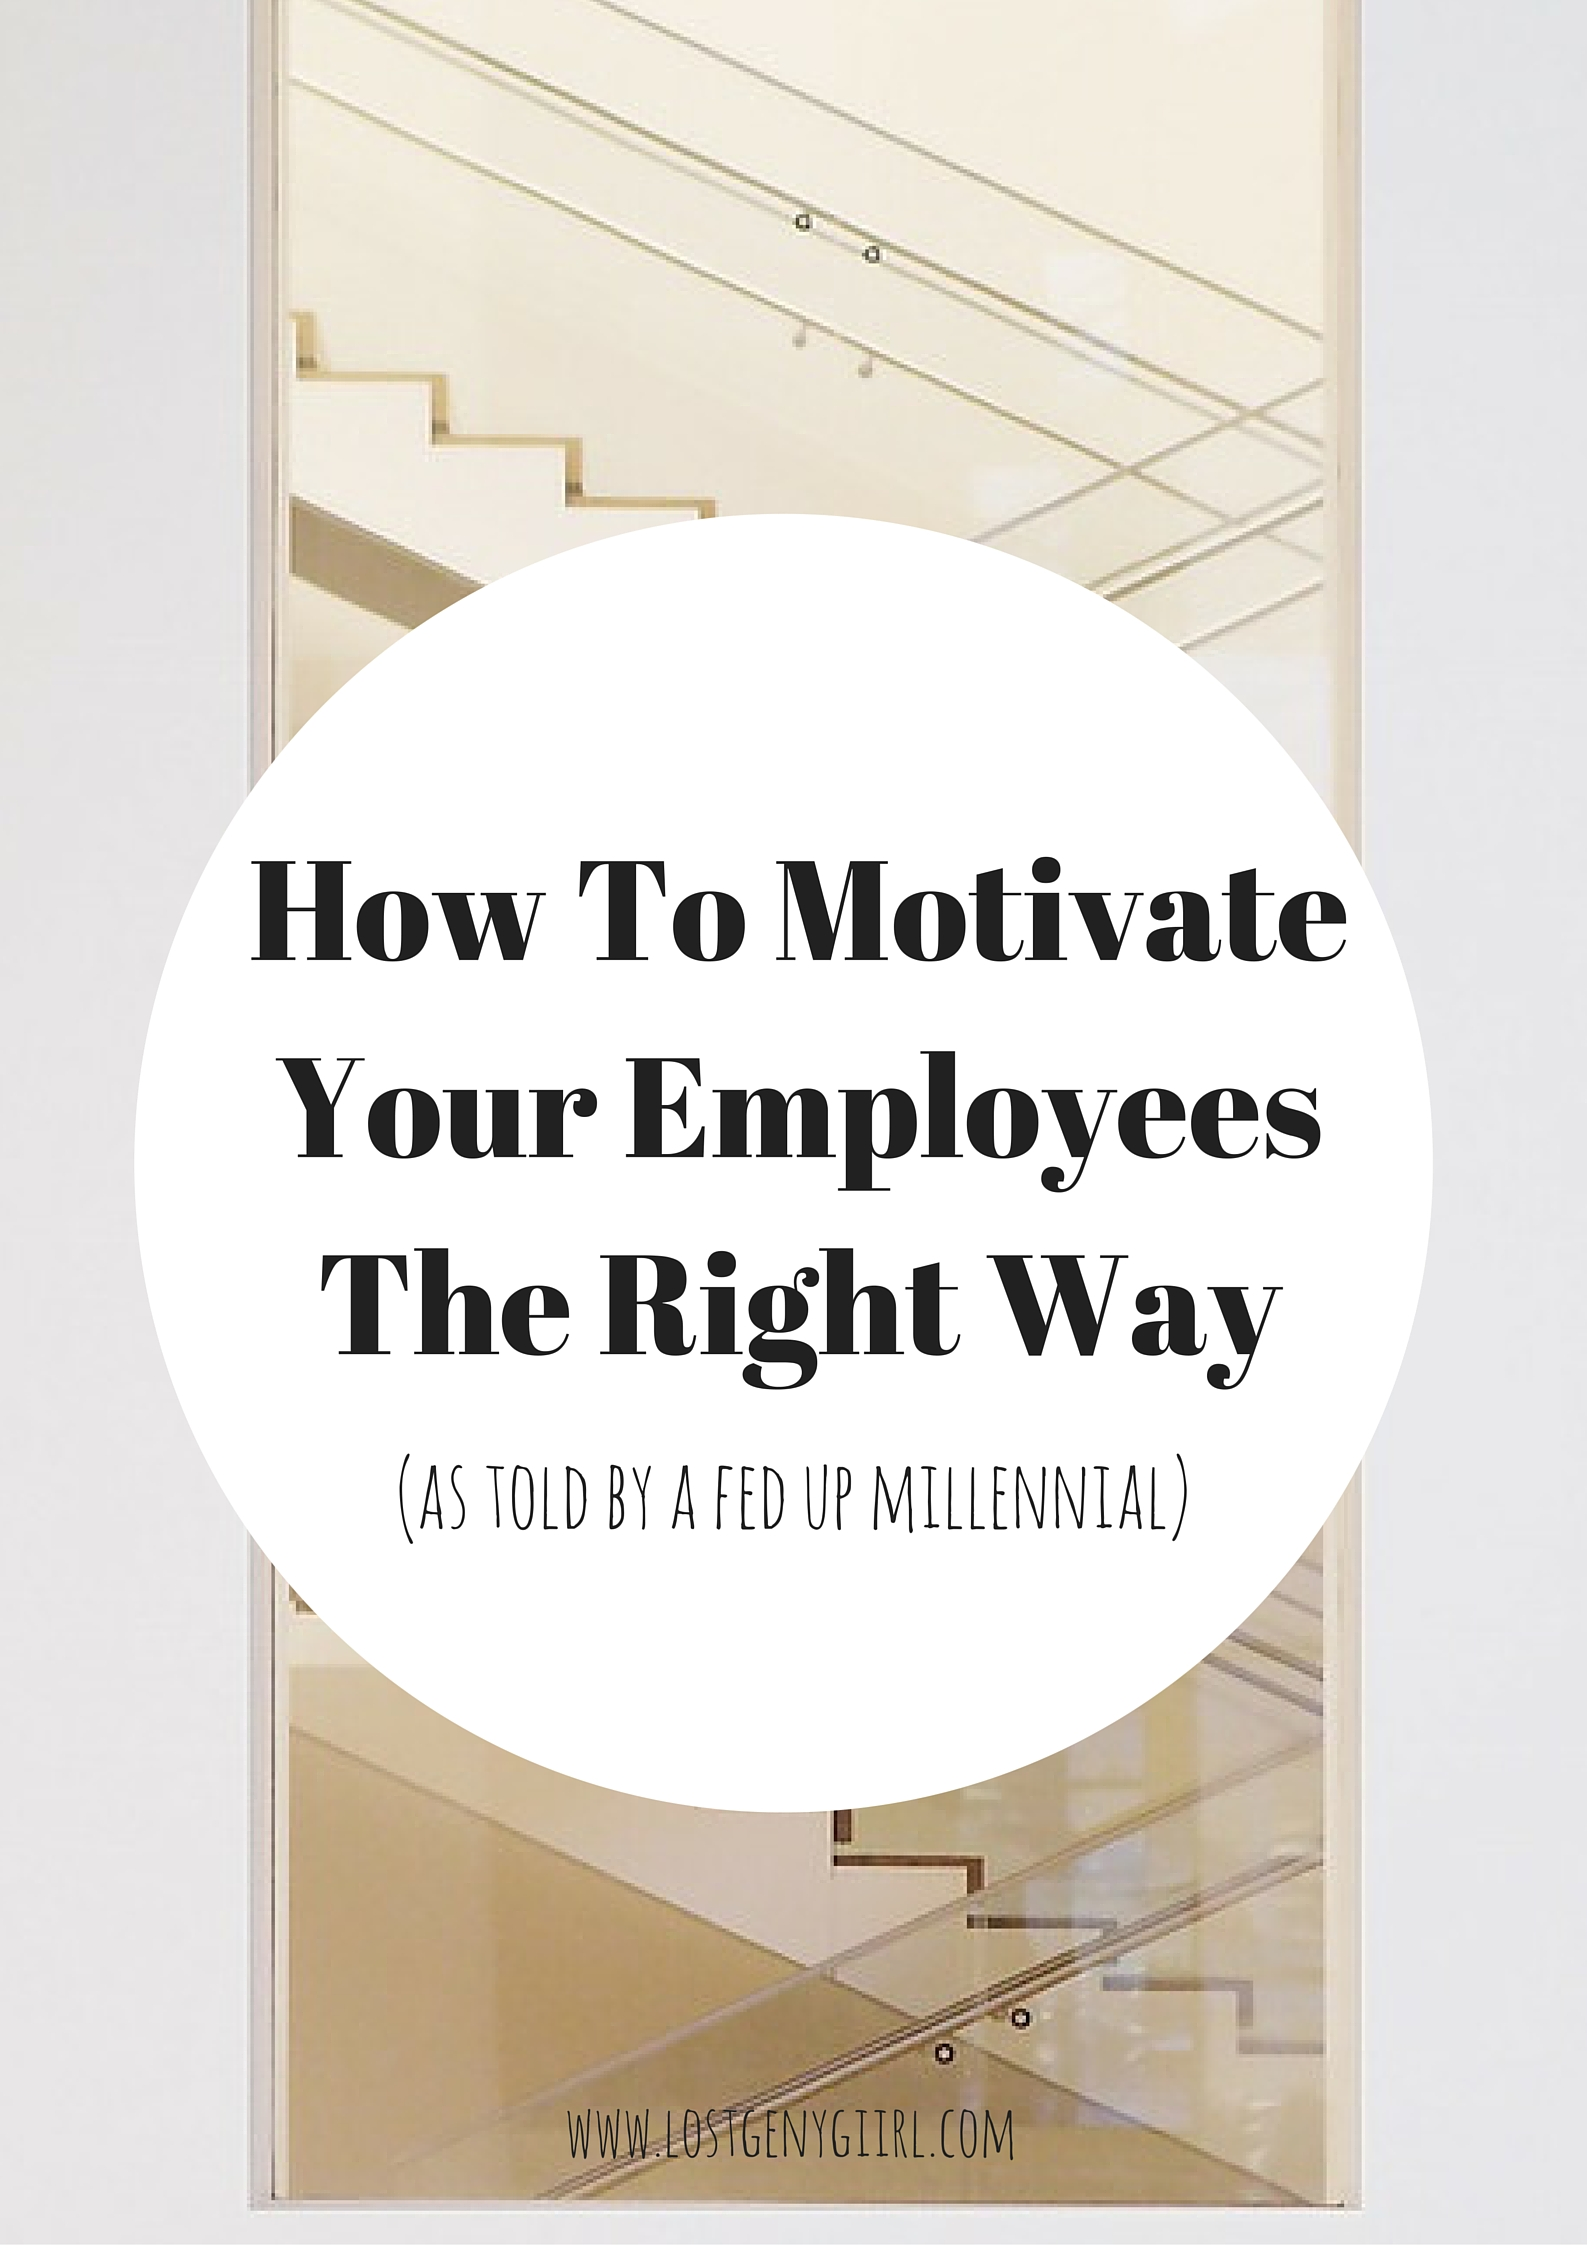 How To Motivate Your Employees The Right Way